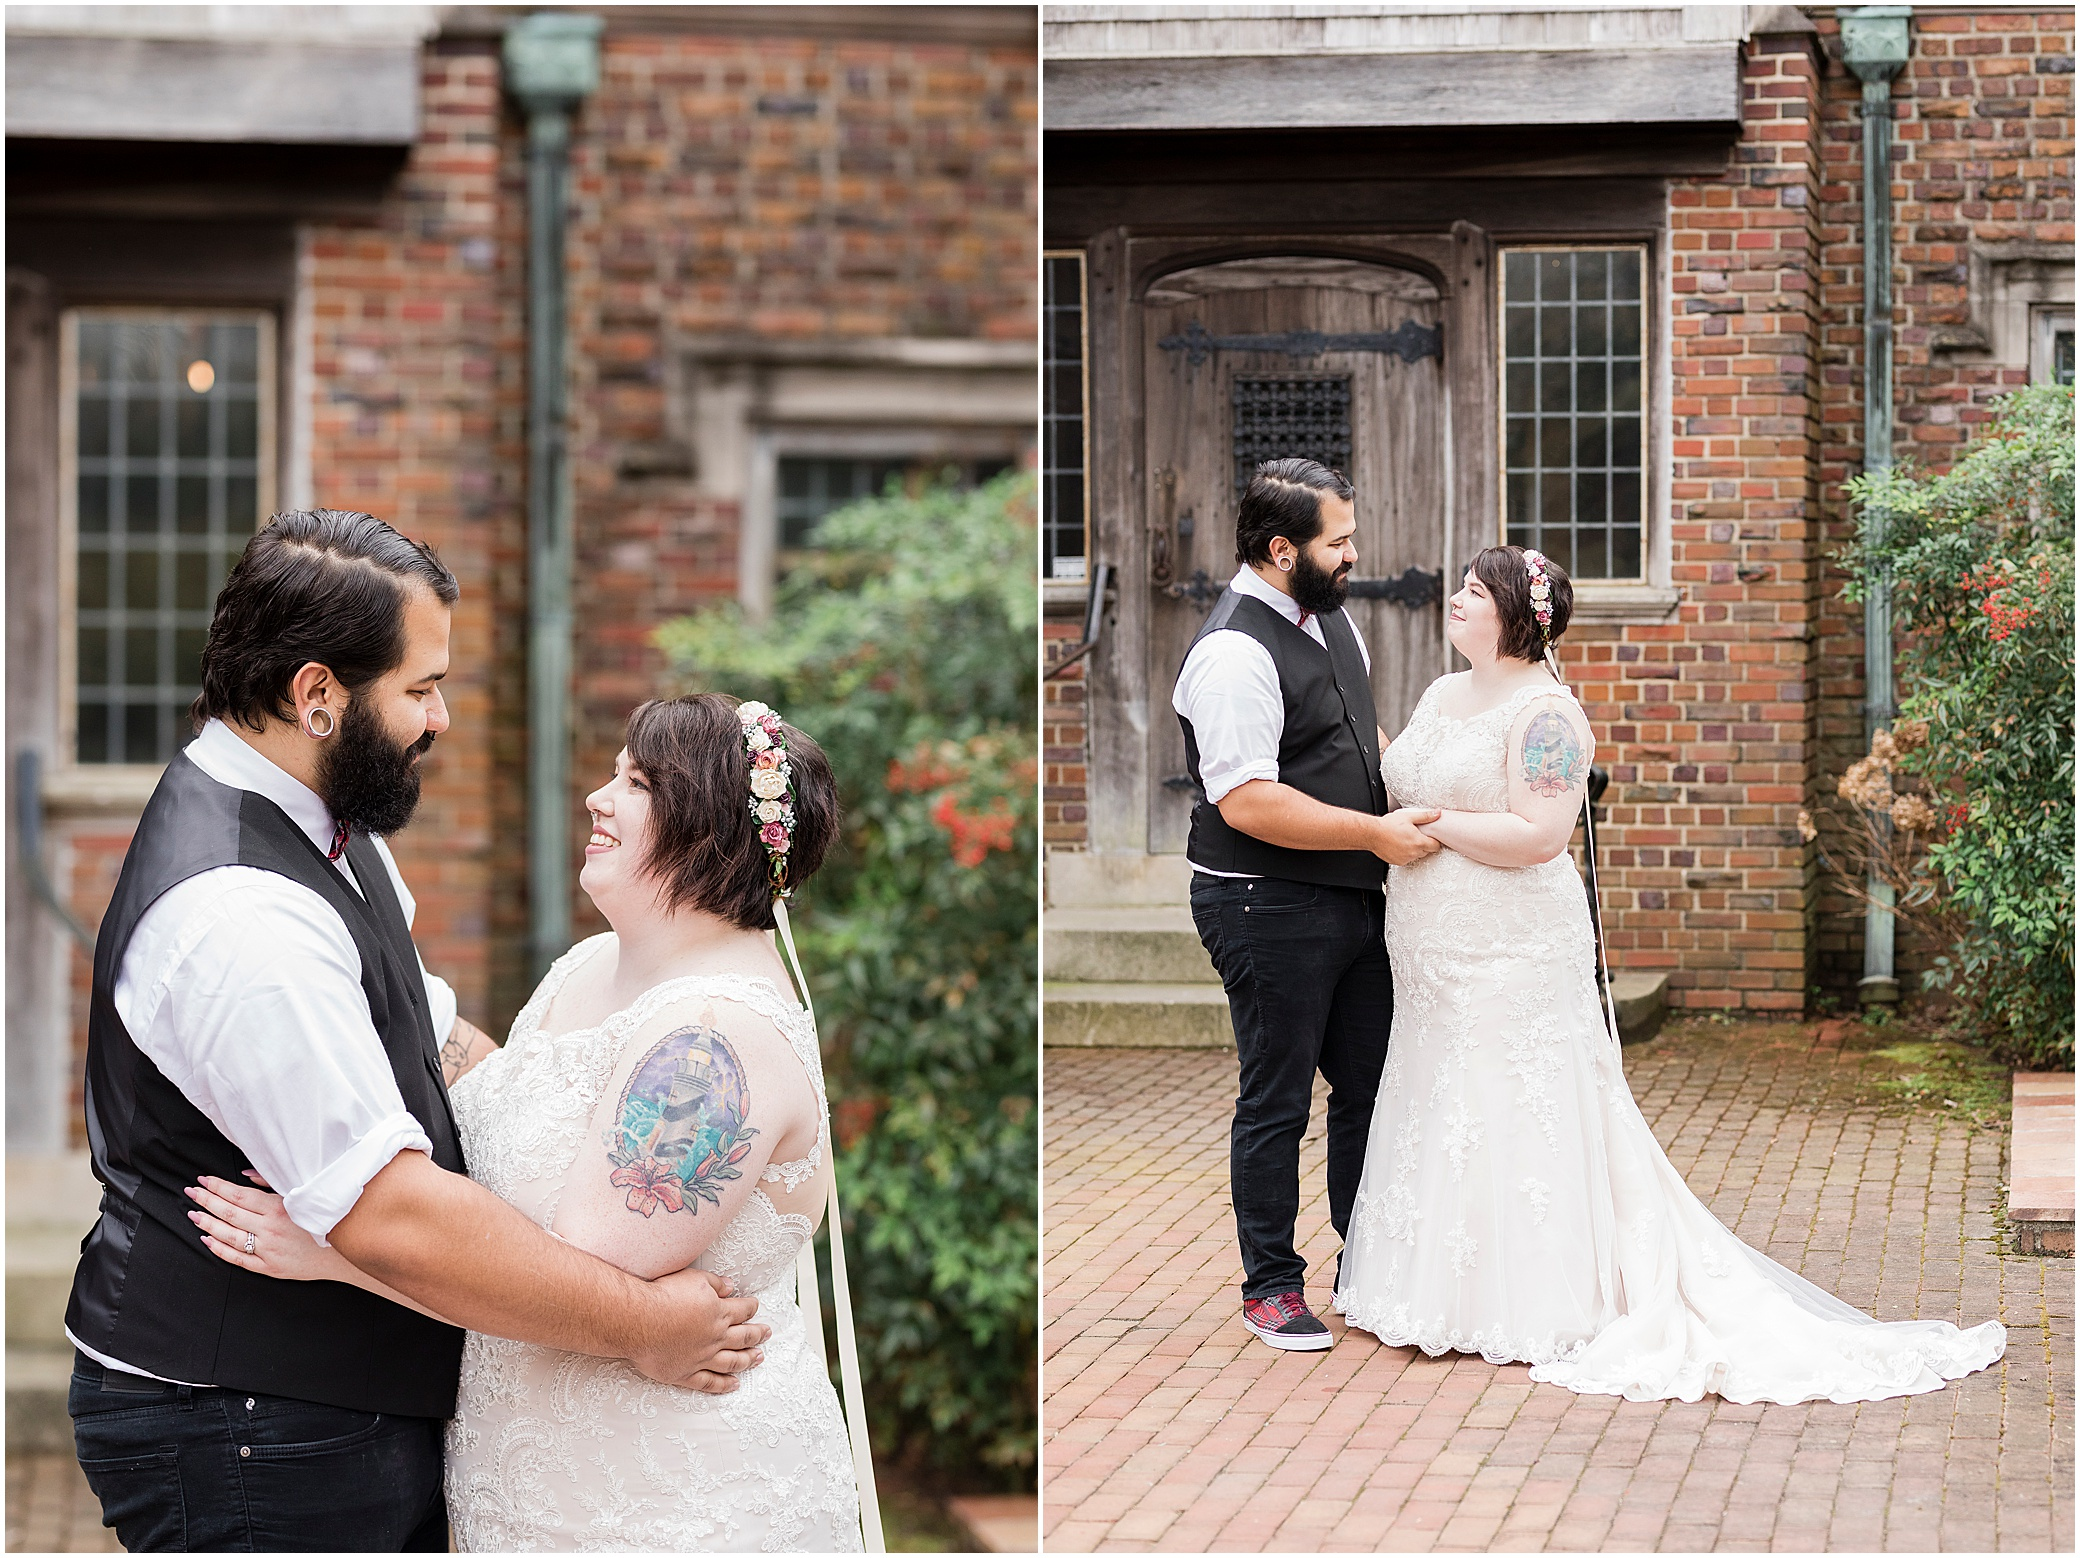 hermitage museum and gardens elopement, studio i do wedding dress, vintage bride and groom candid portraits